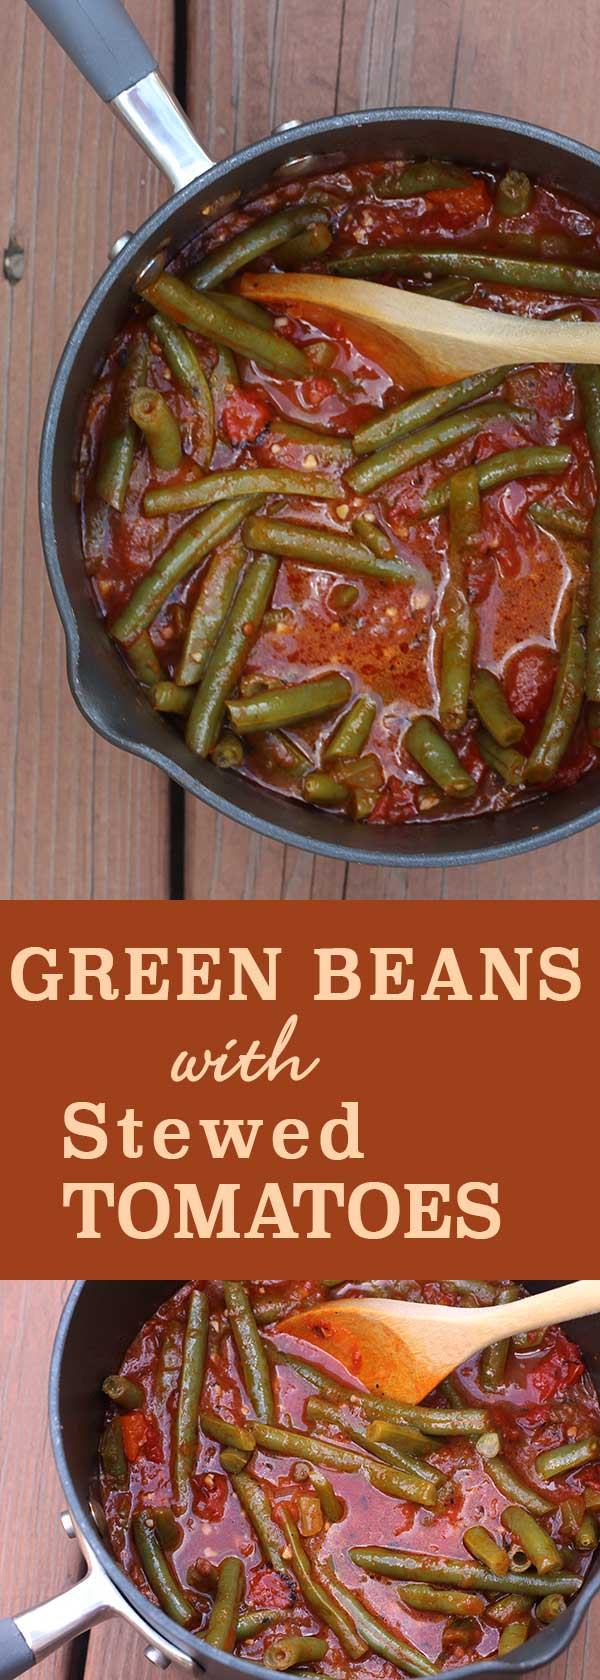 Green Beans with Stewed Tomatoes | diabeticfoodie.com